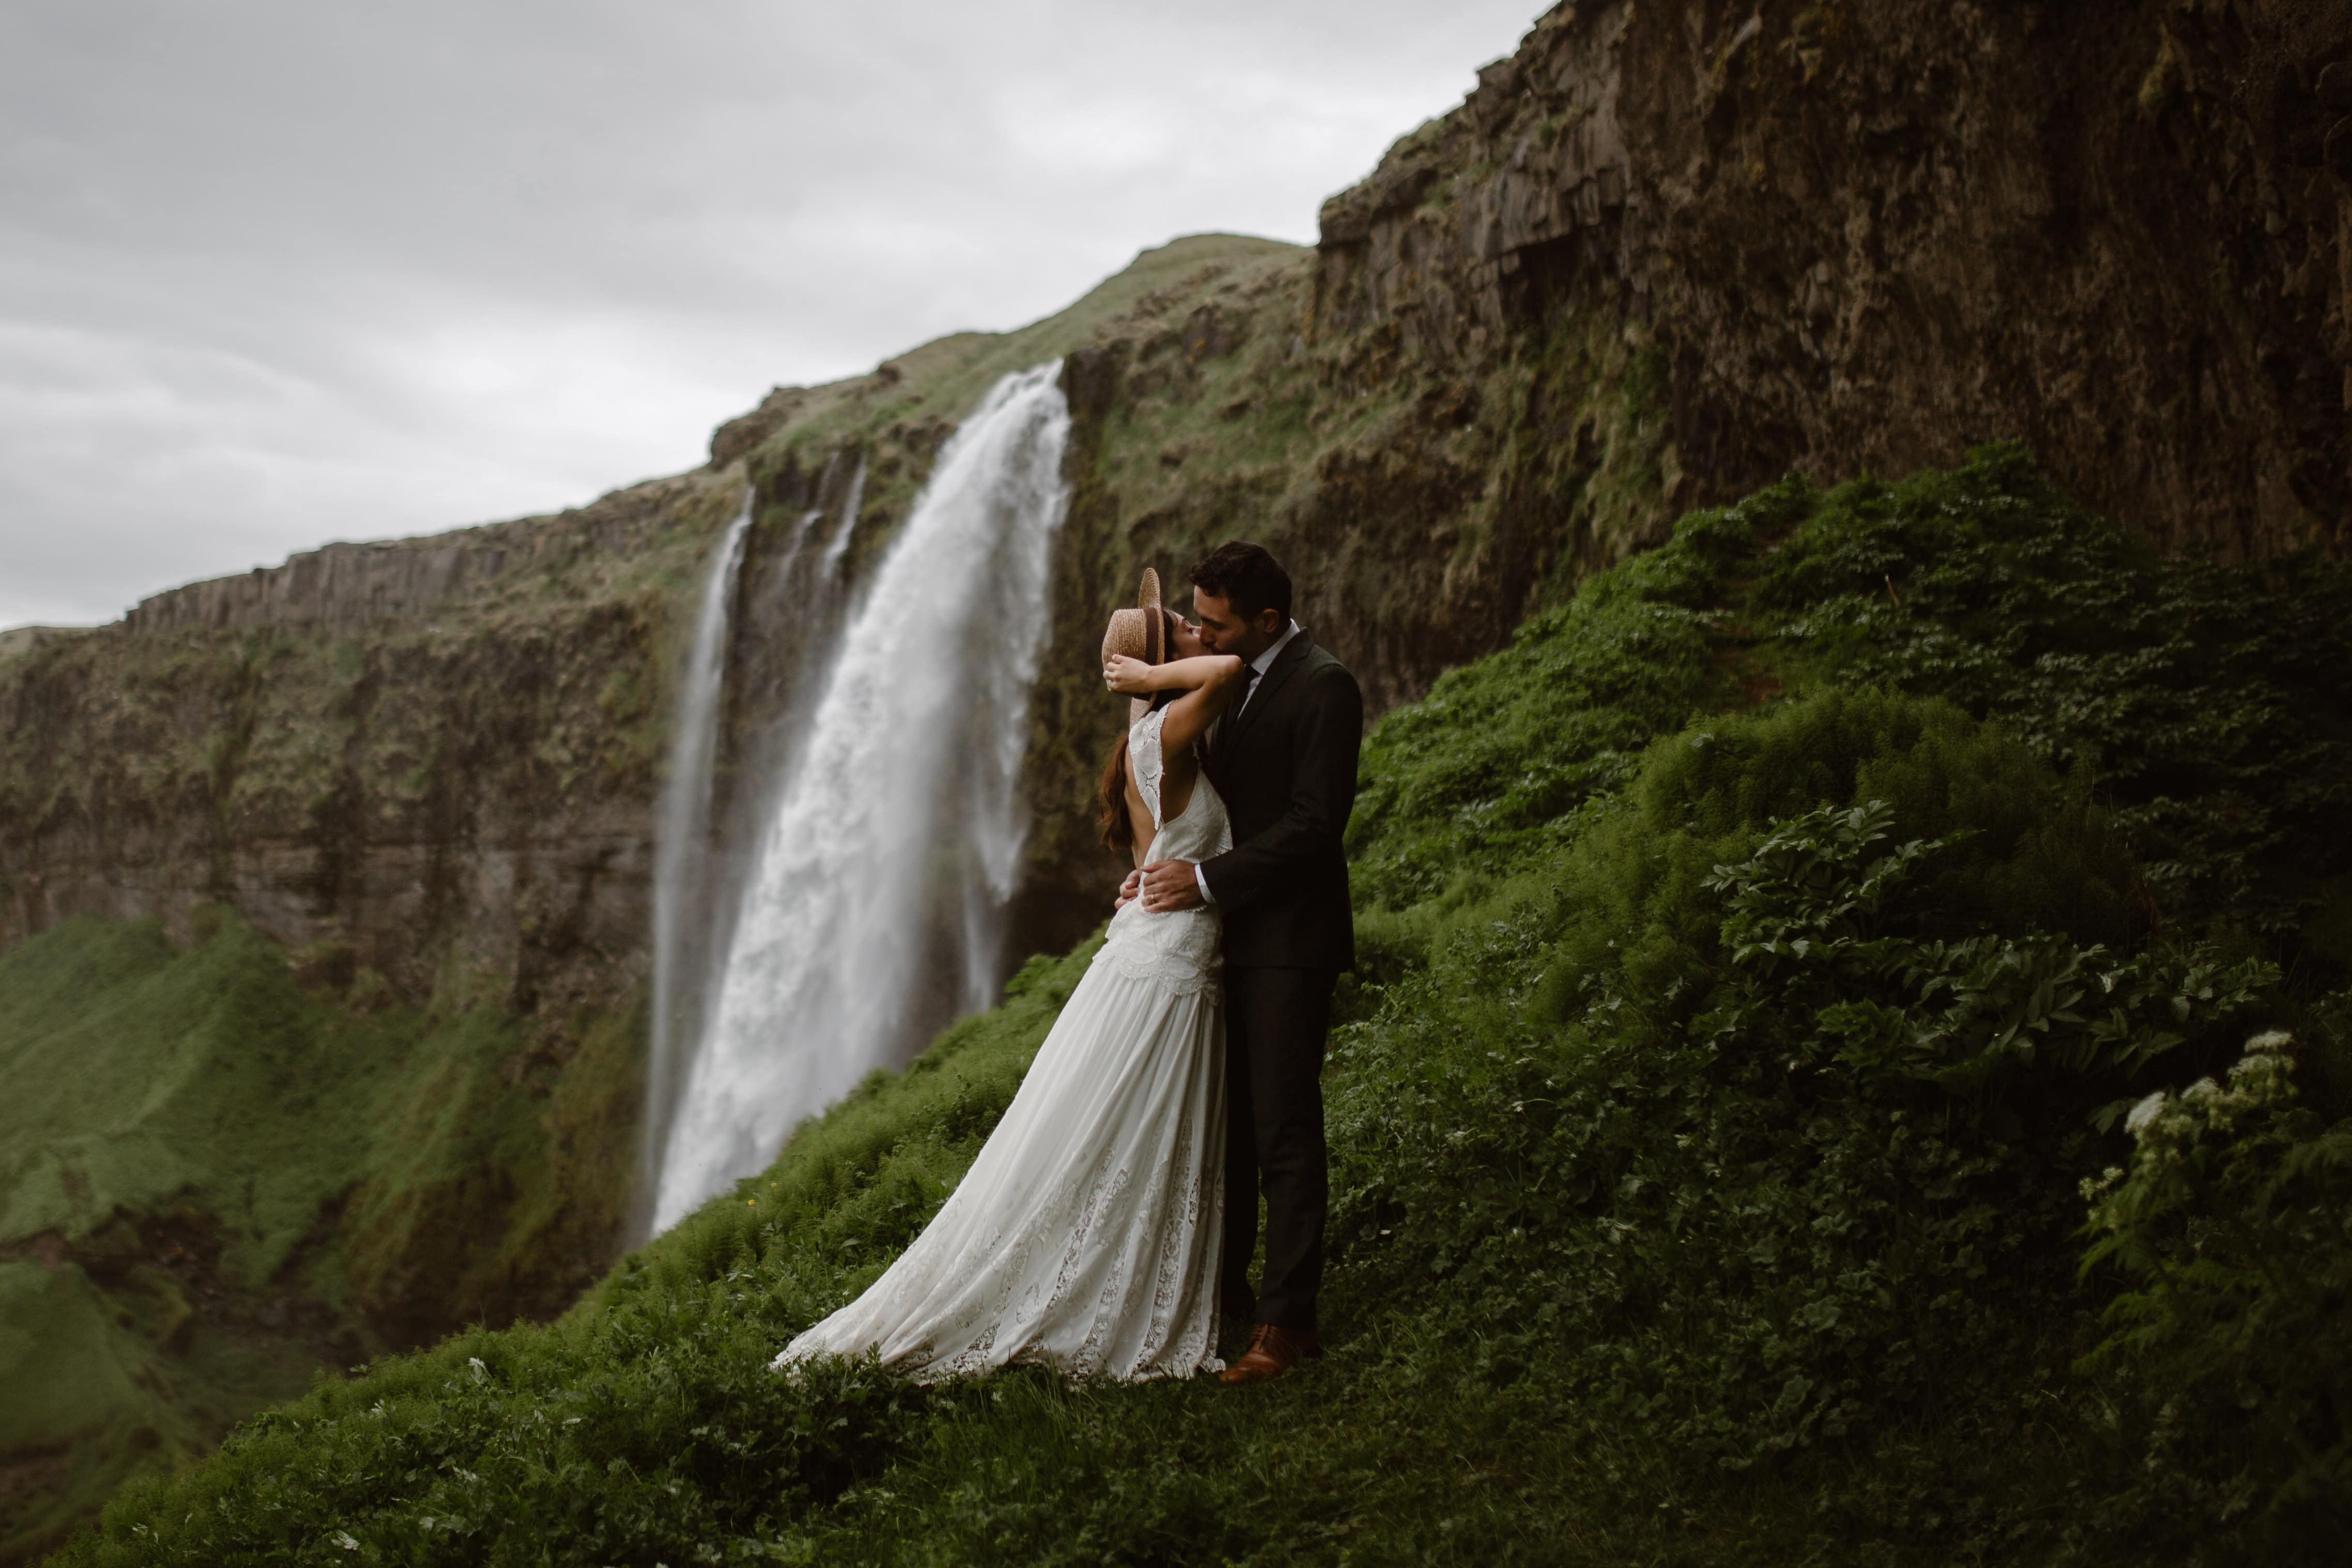 An eloping couple is kissing in front of an epic waterfall in Iceland. The bride is holding onto her wide brimmed hat so it doesn't blow away with the force of the waterfall. When you think of the best locations to elope, Iceland should be on the list.